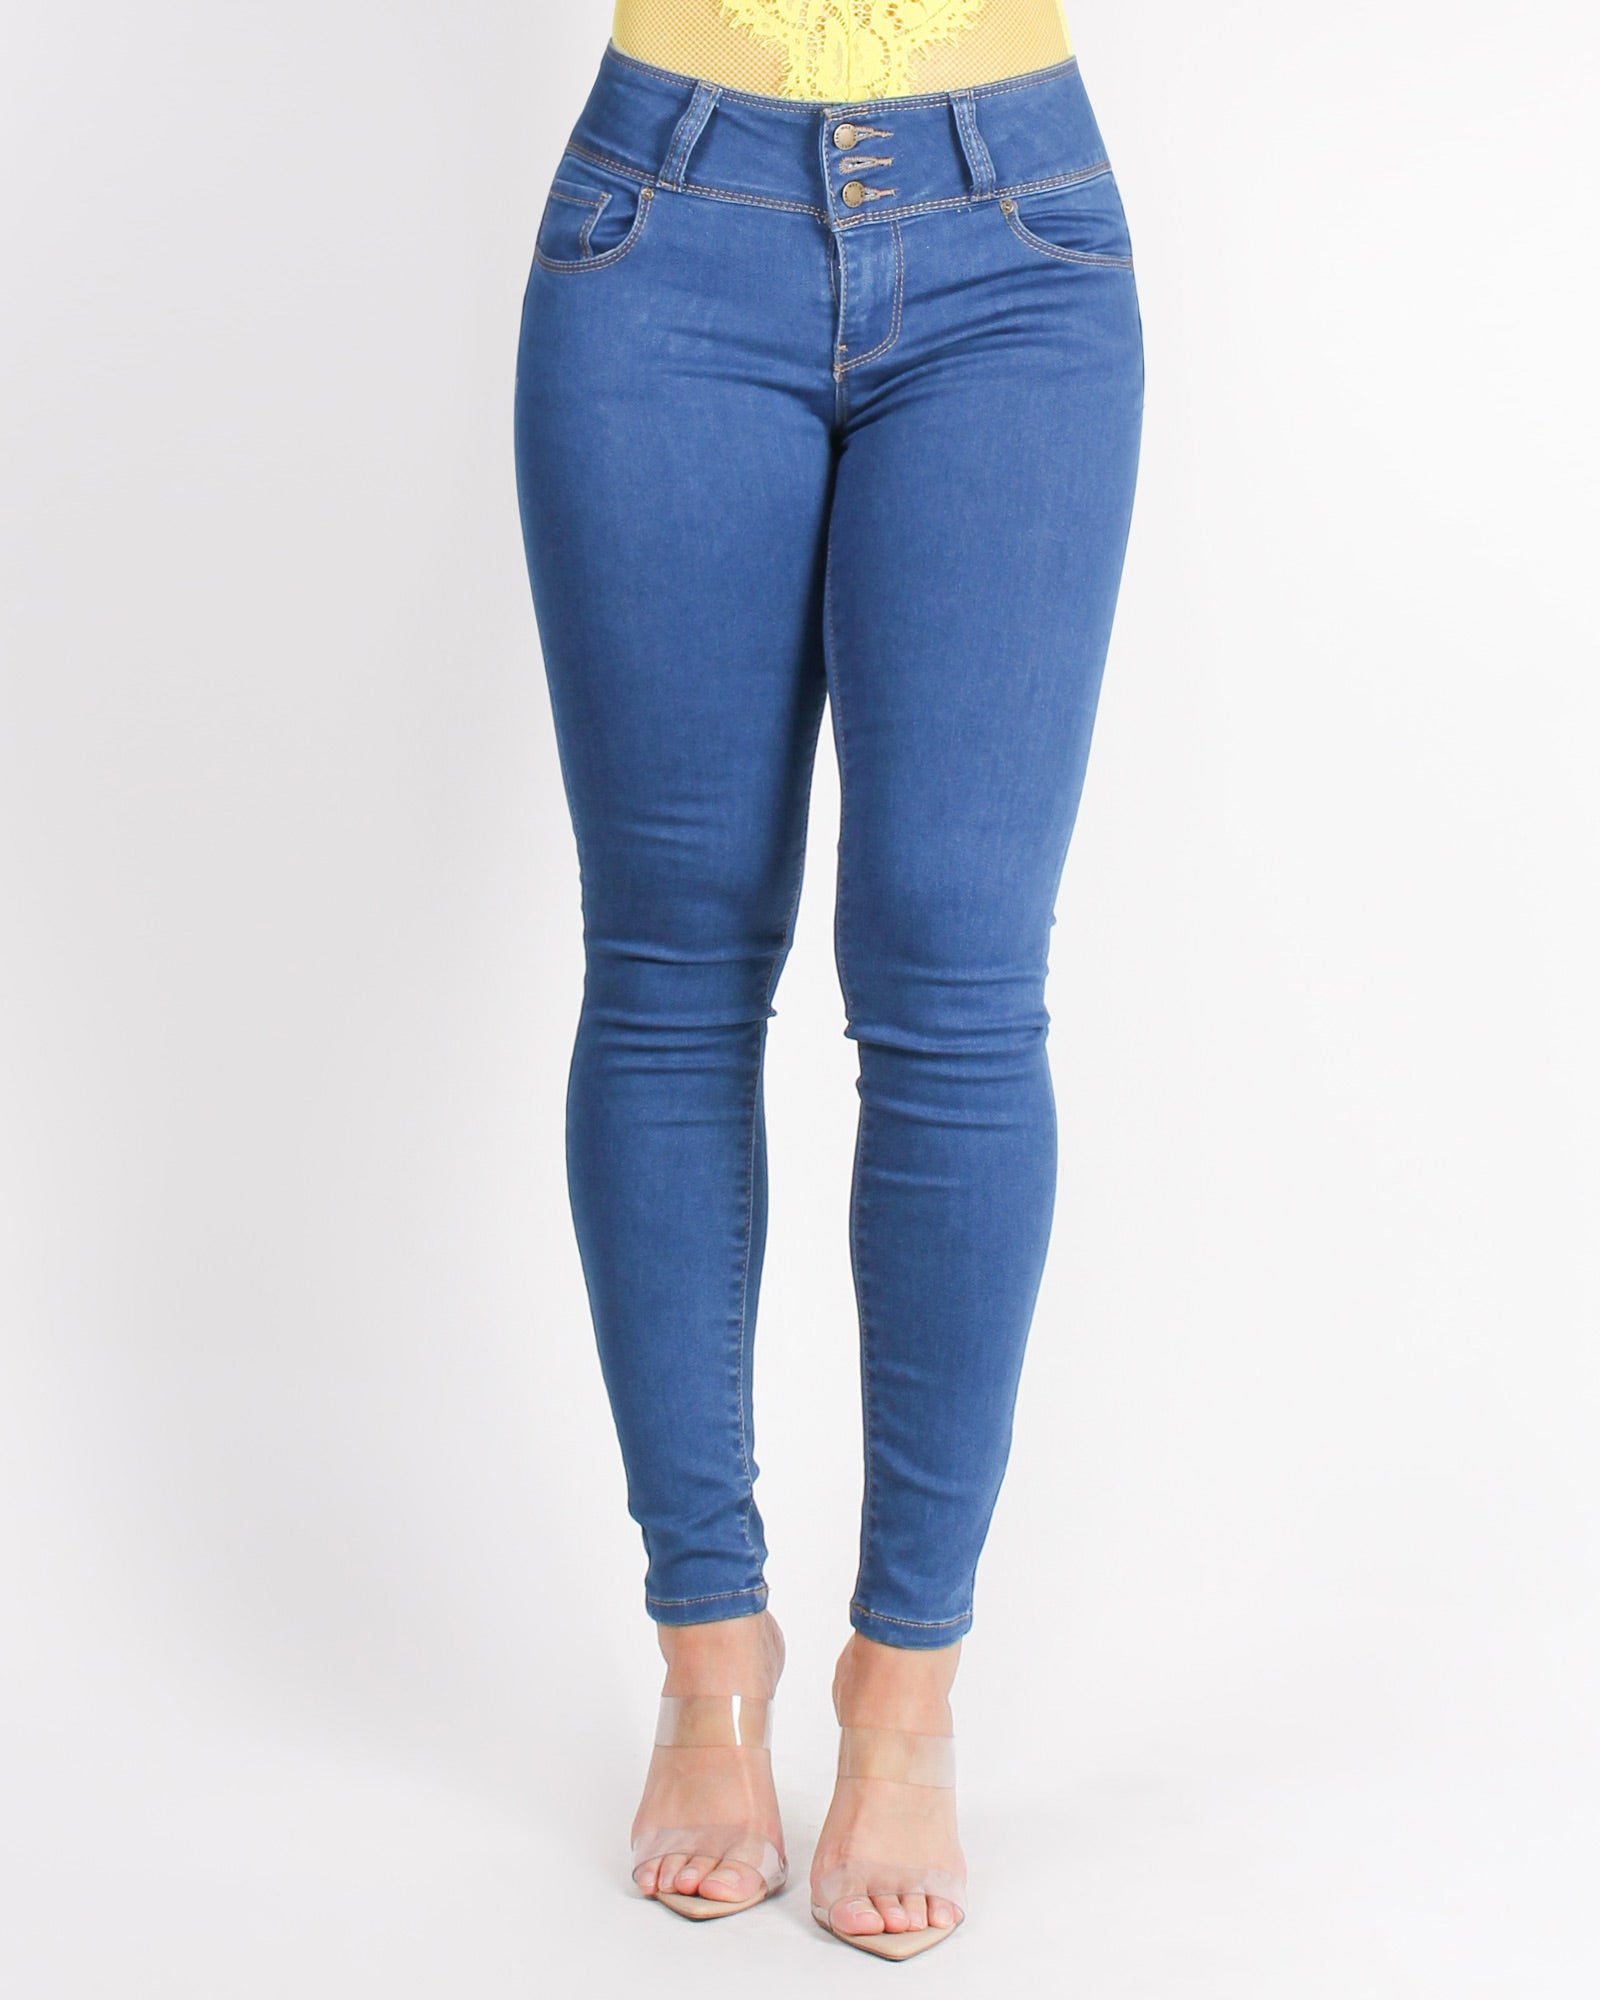 I'm Too Fabulous Push-Up Collection Jeans (Medium Wash)